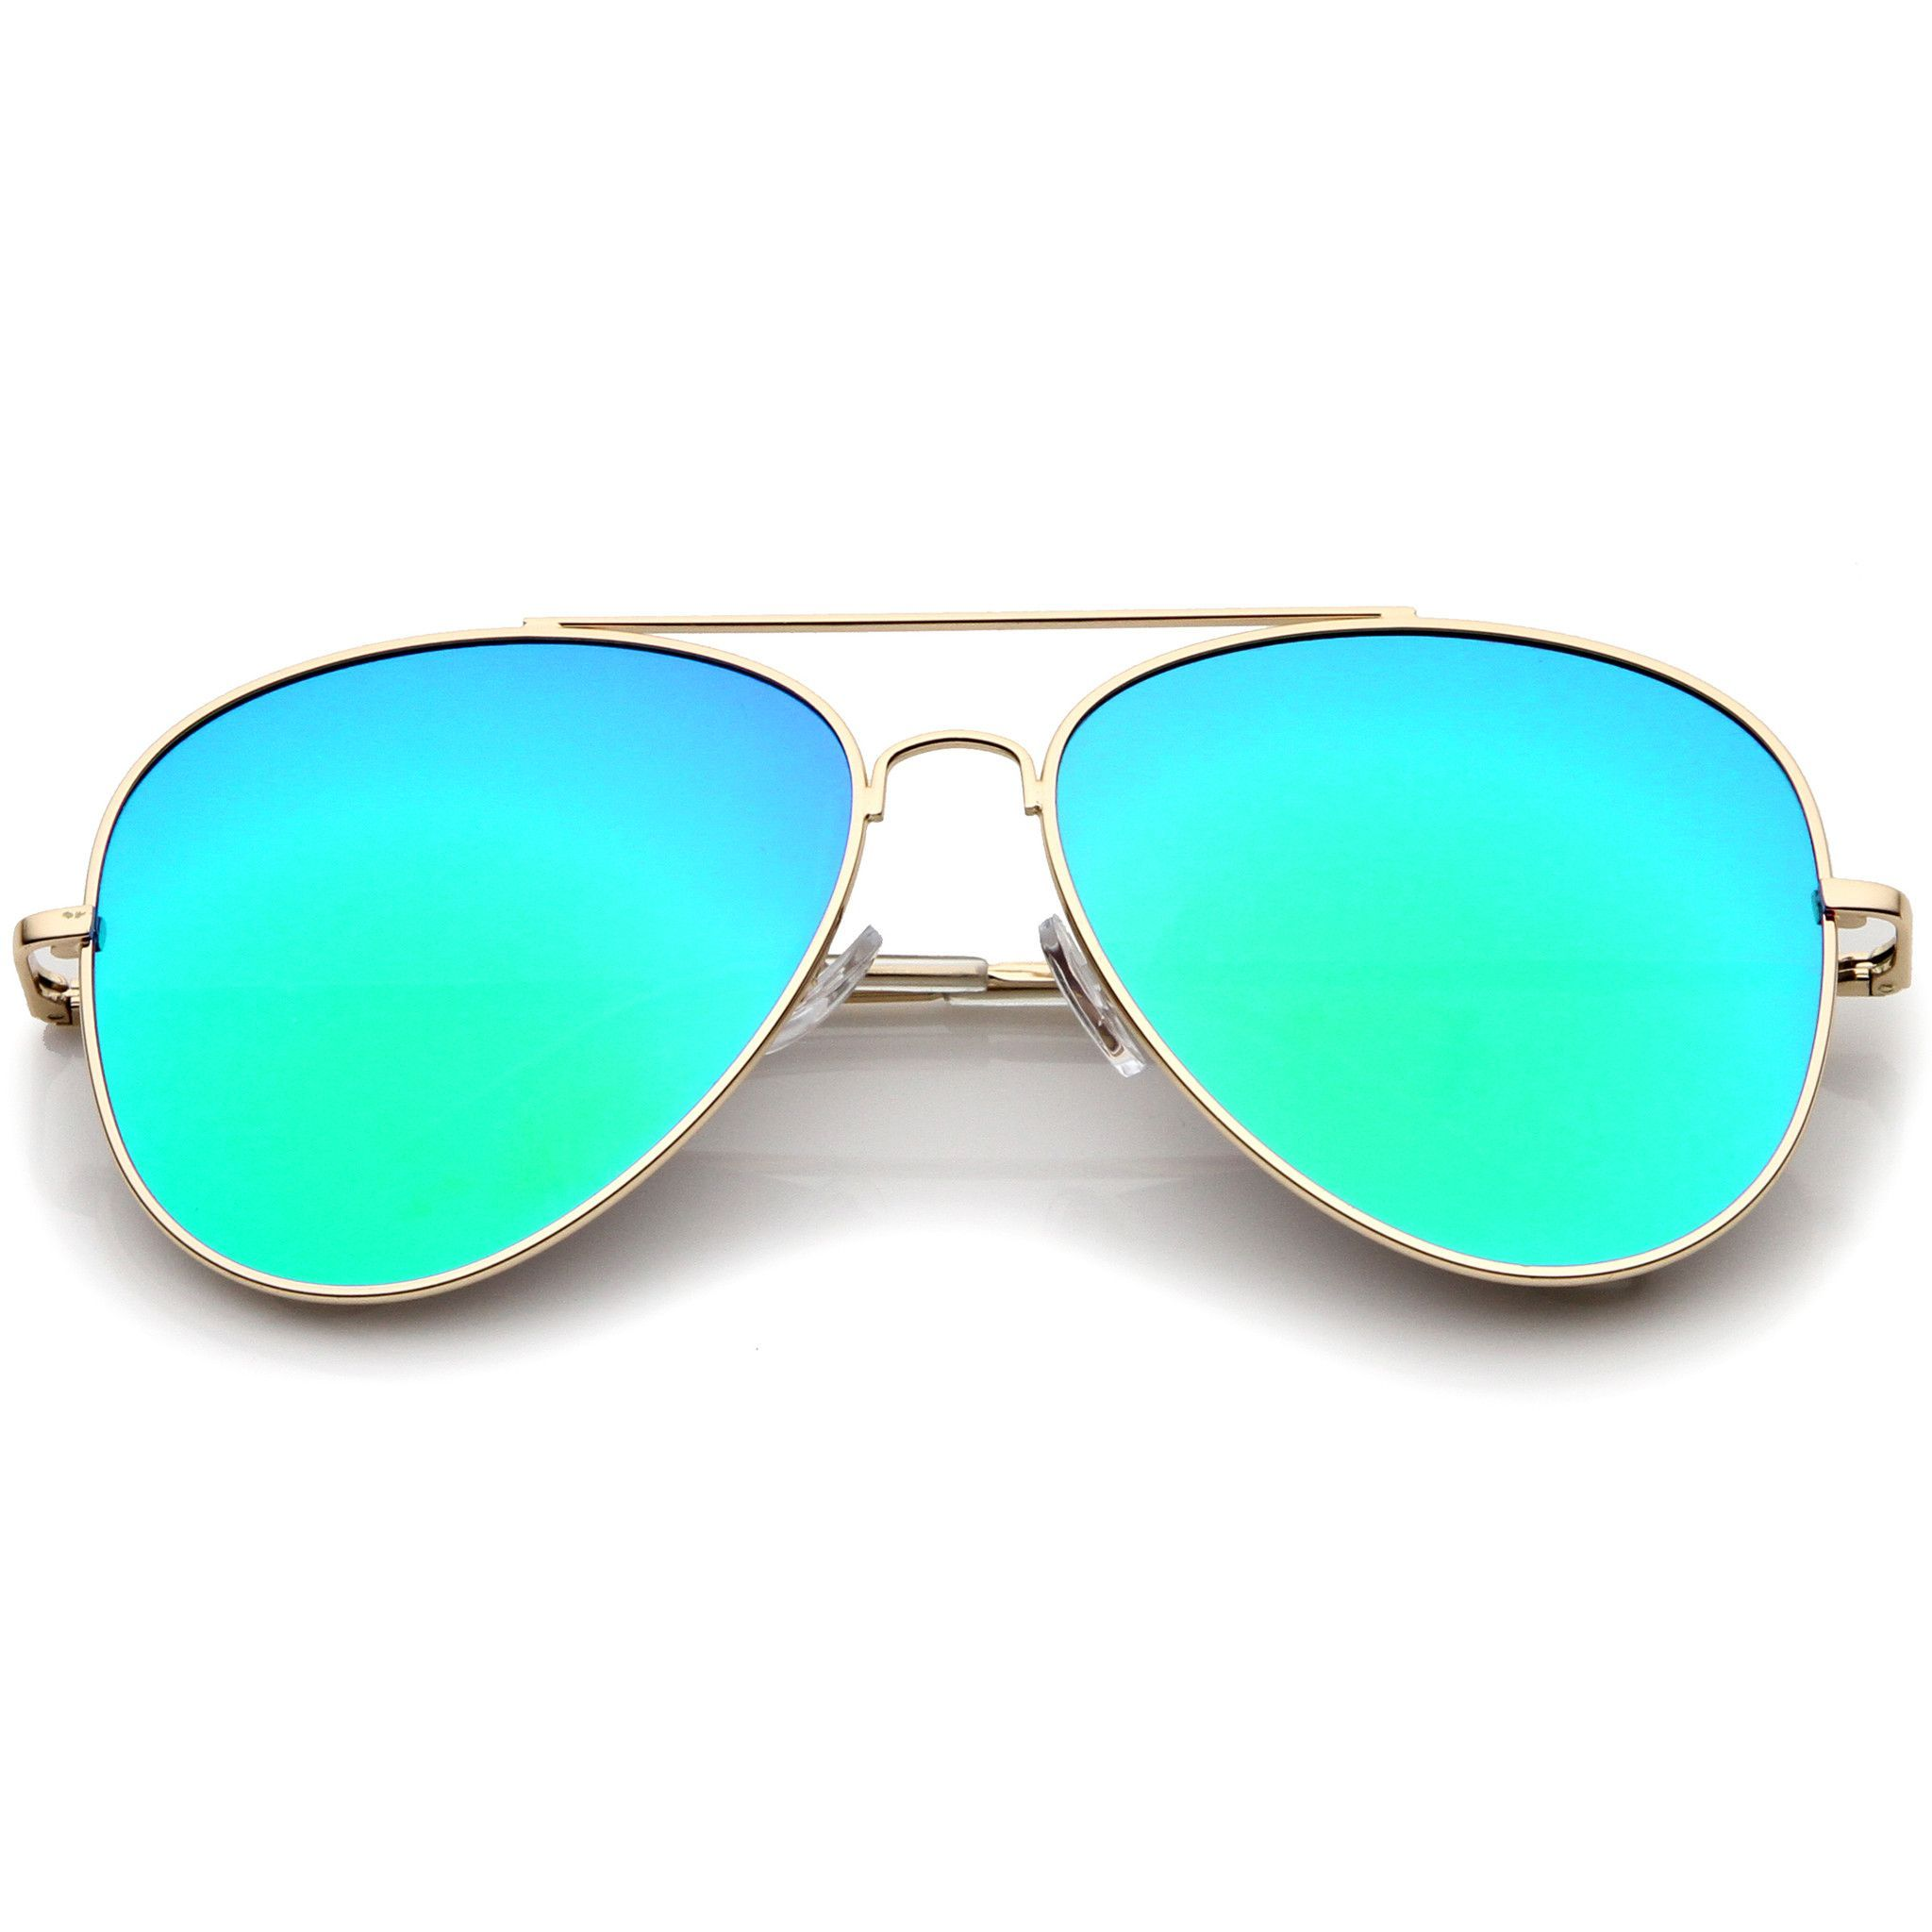 fccf8ac3d Large Flat Front Mirrored Lens Aviator Sunglasses A485  https://bellanblue.com Summer